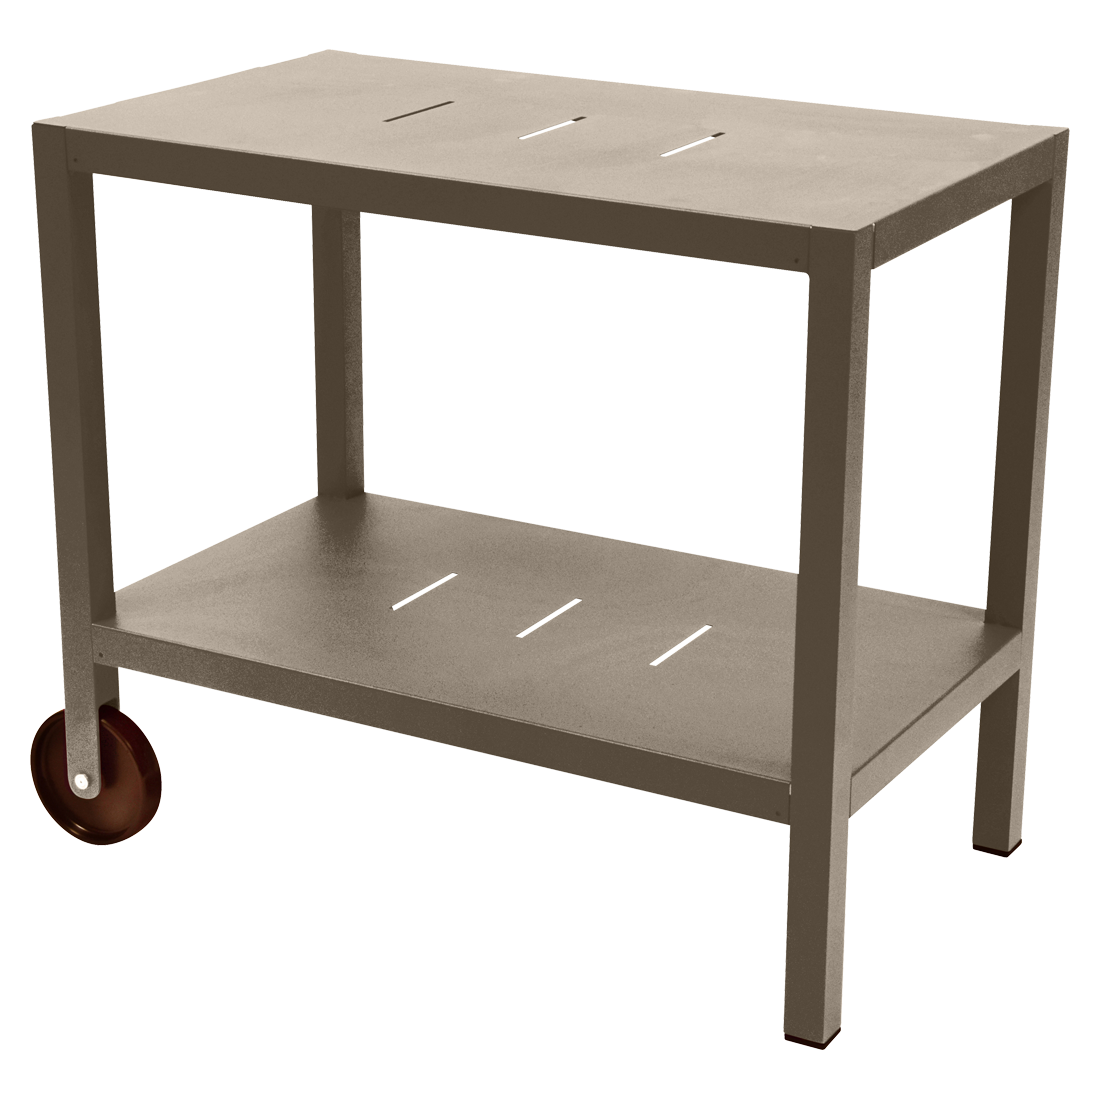 quib ron dresser metal trolley bar side table. Black Bedroom Furniture Sets. Home Design Ideas